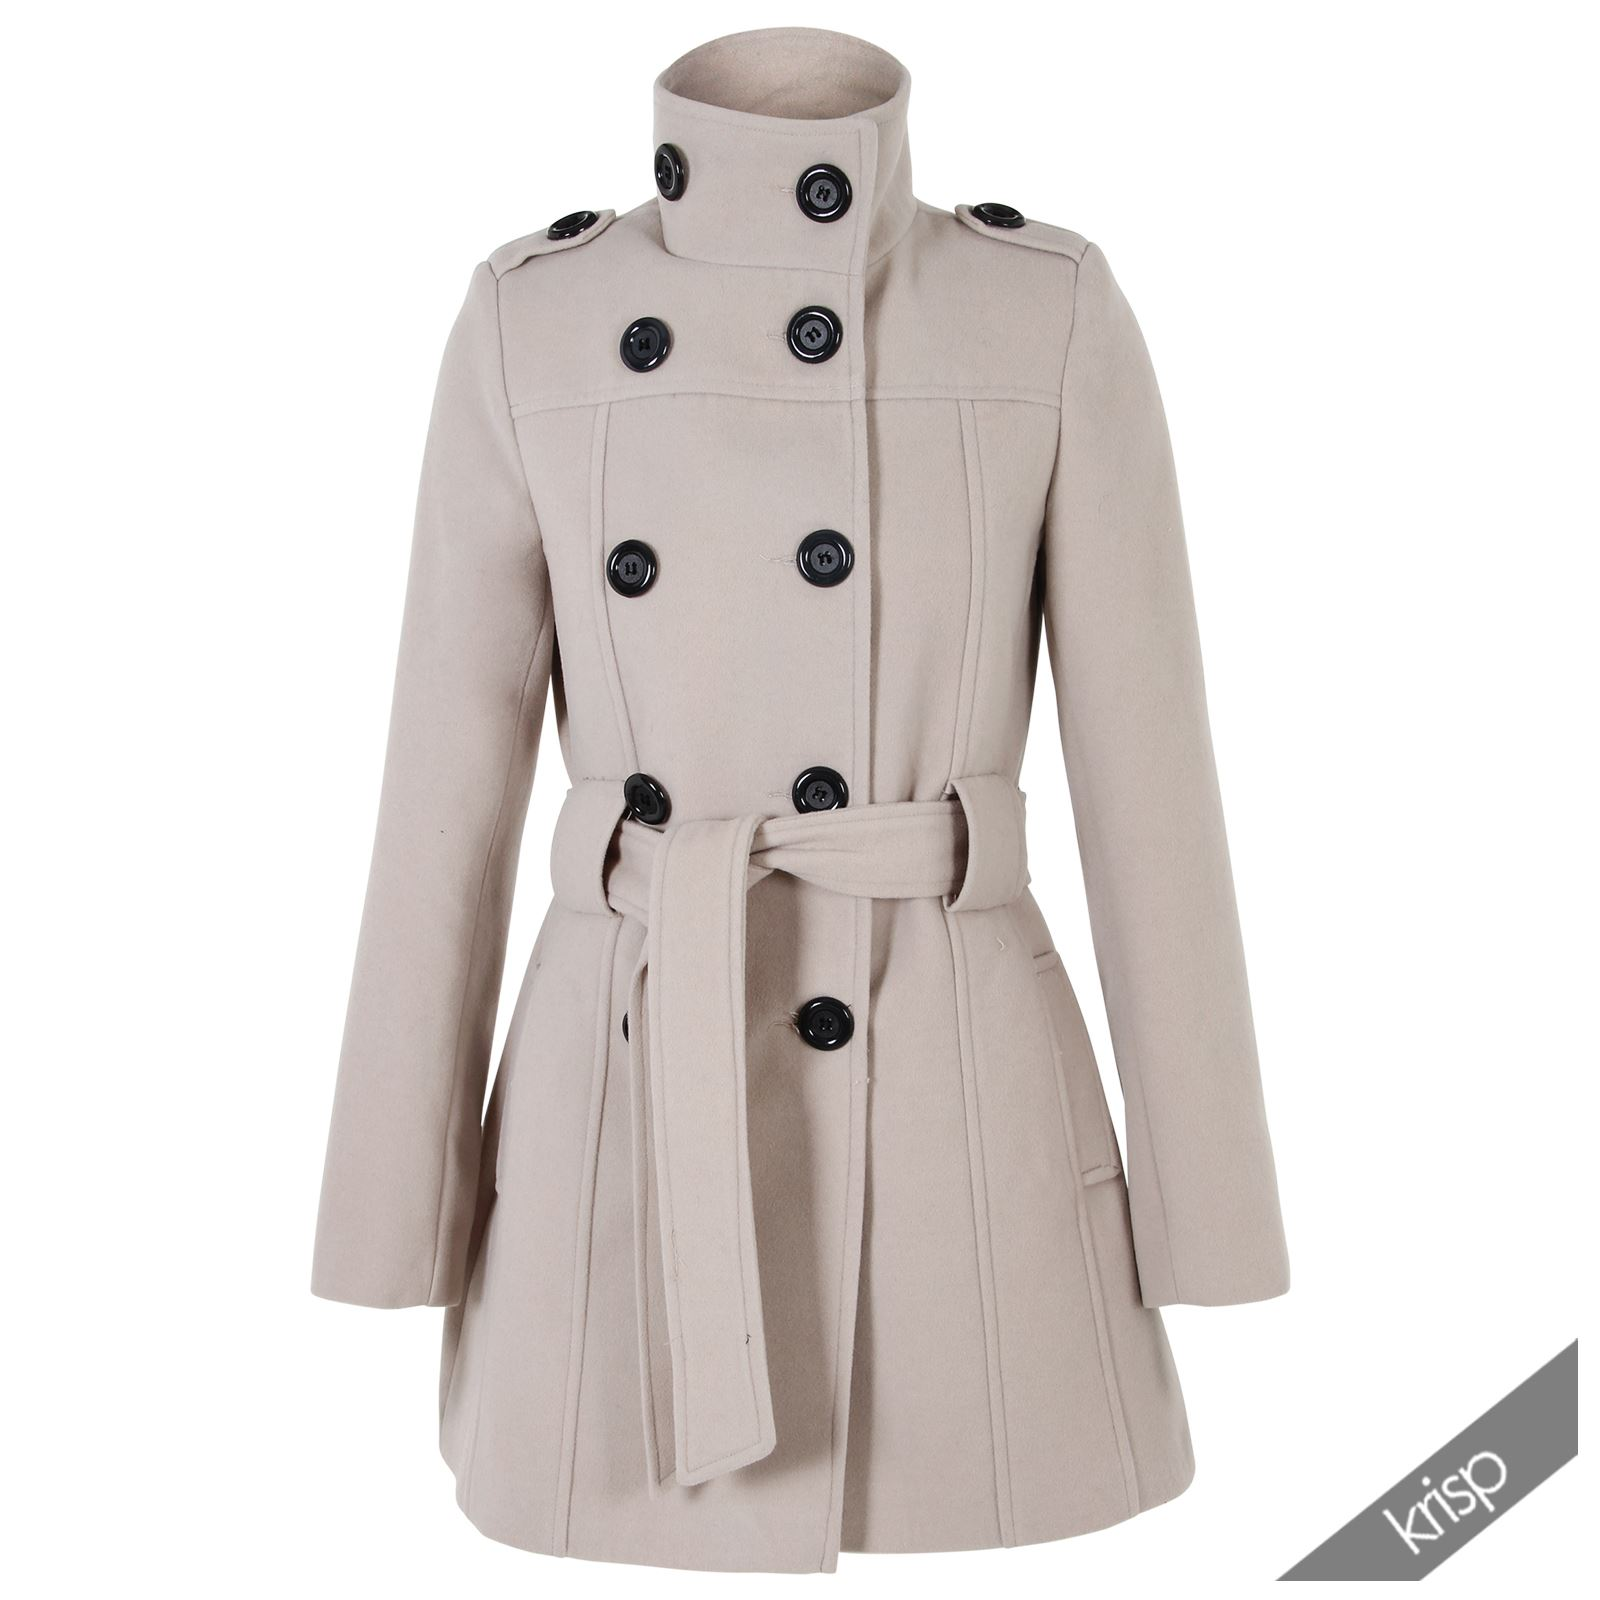 Womens double breasted military coat